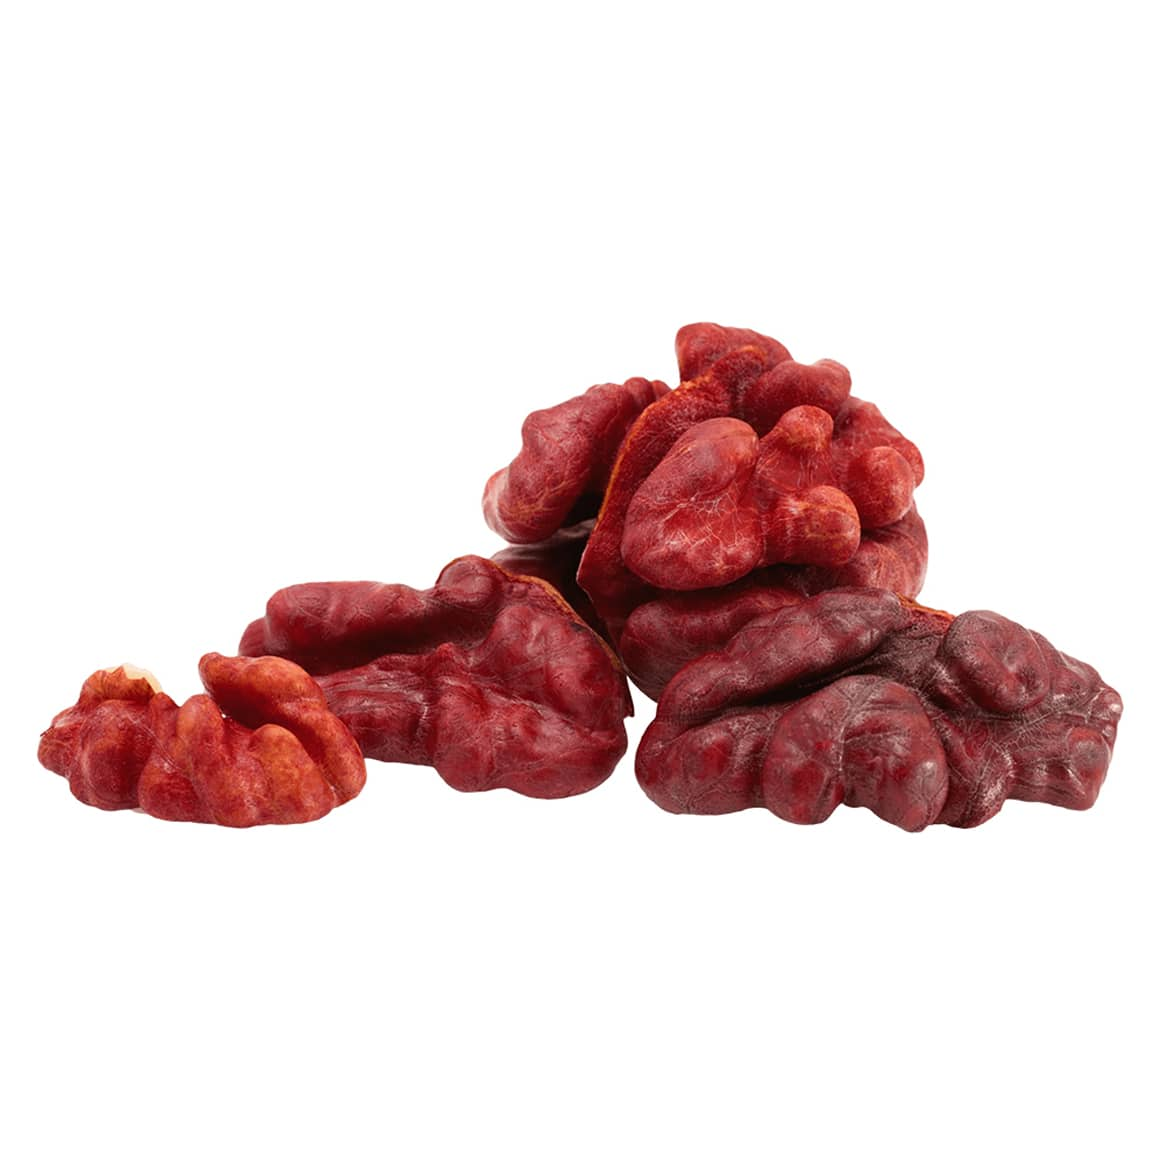 Red Walnuts